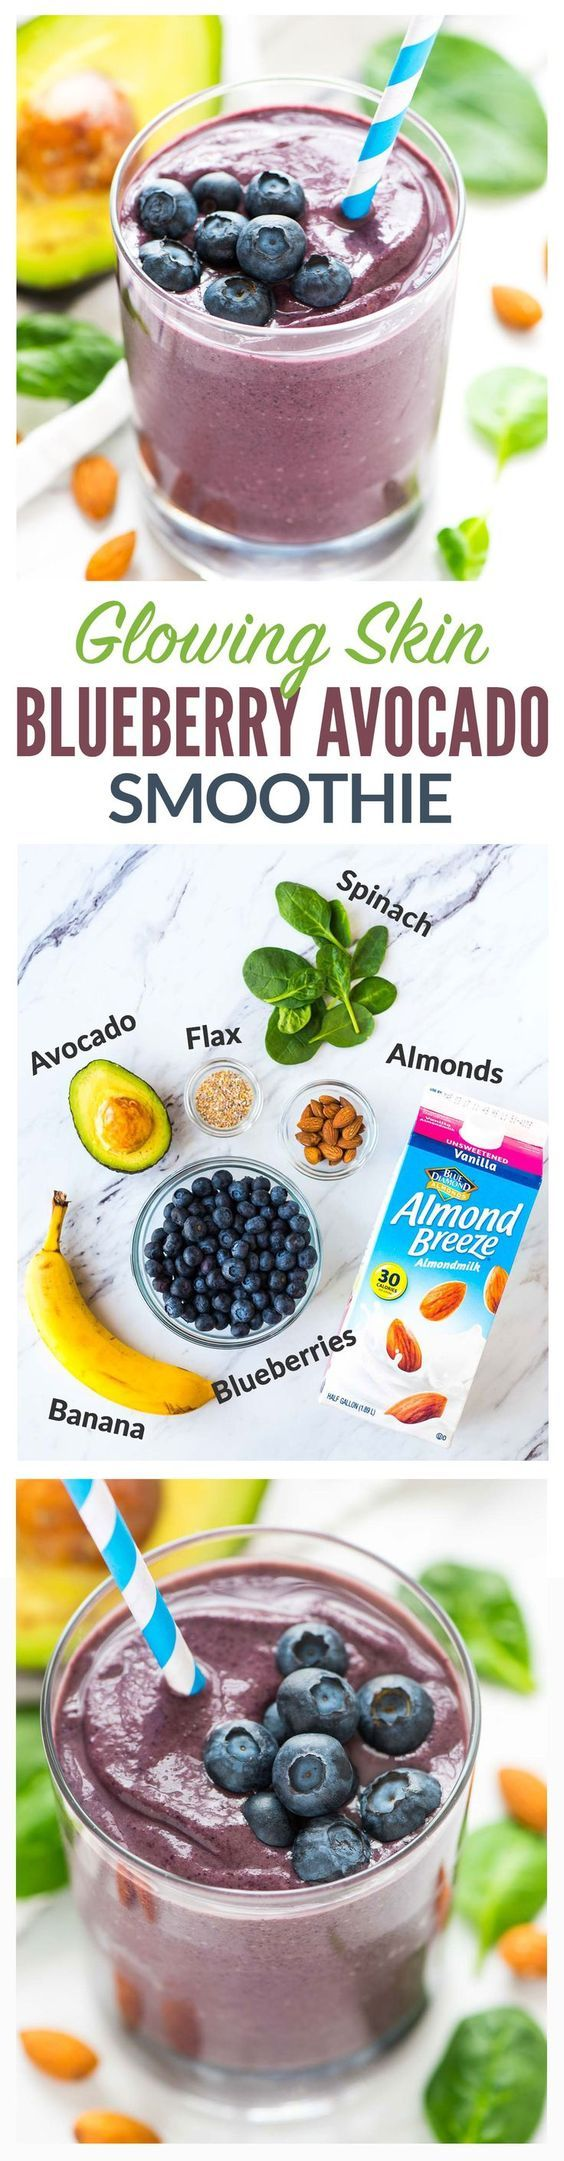 Hydrating blueberry avocado banana smoothie for glowing skin with